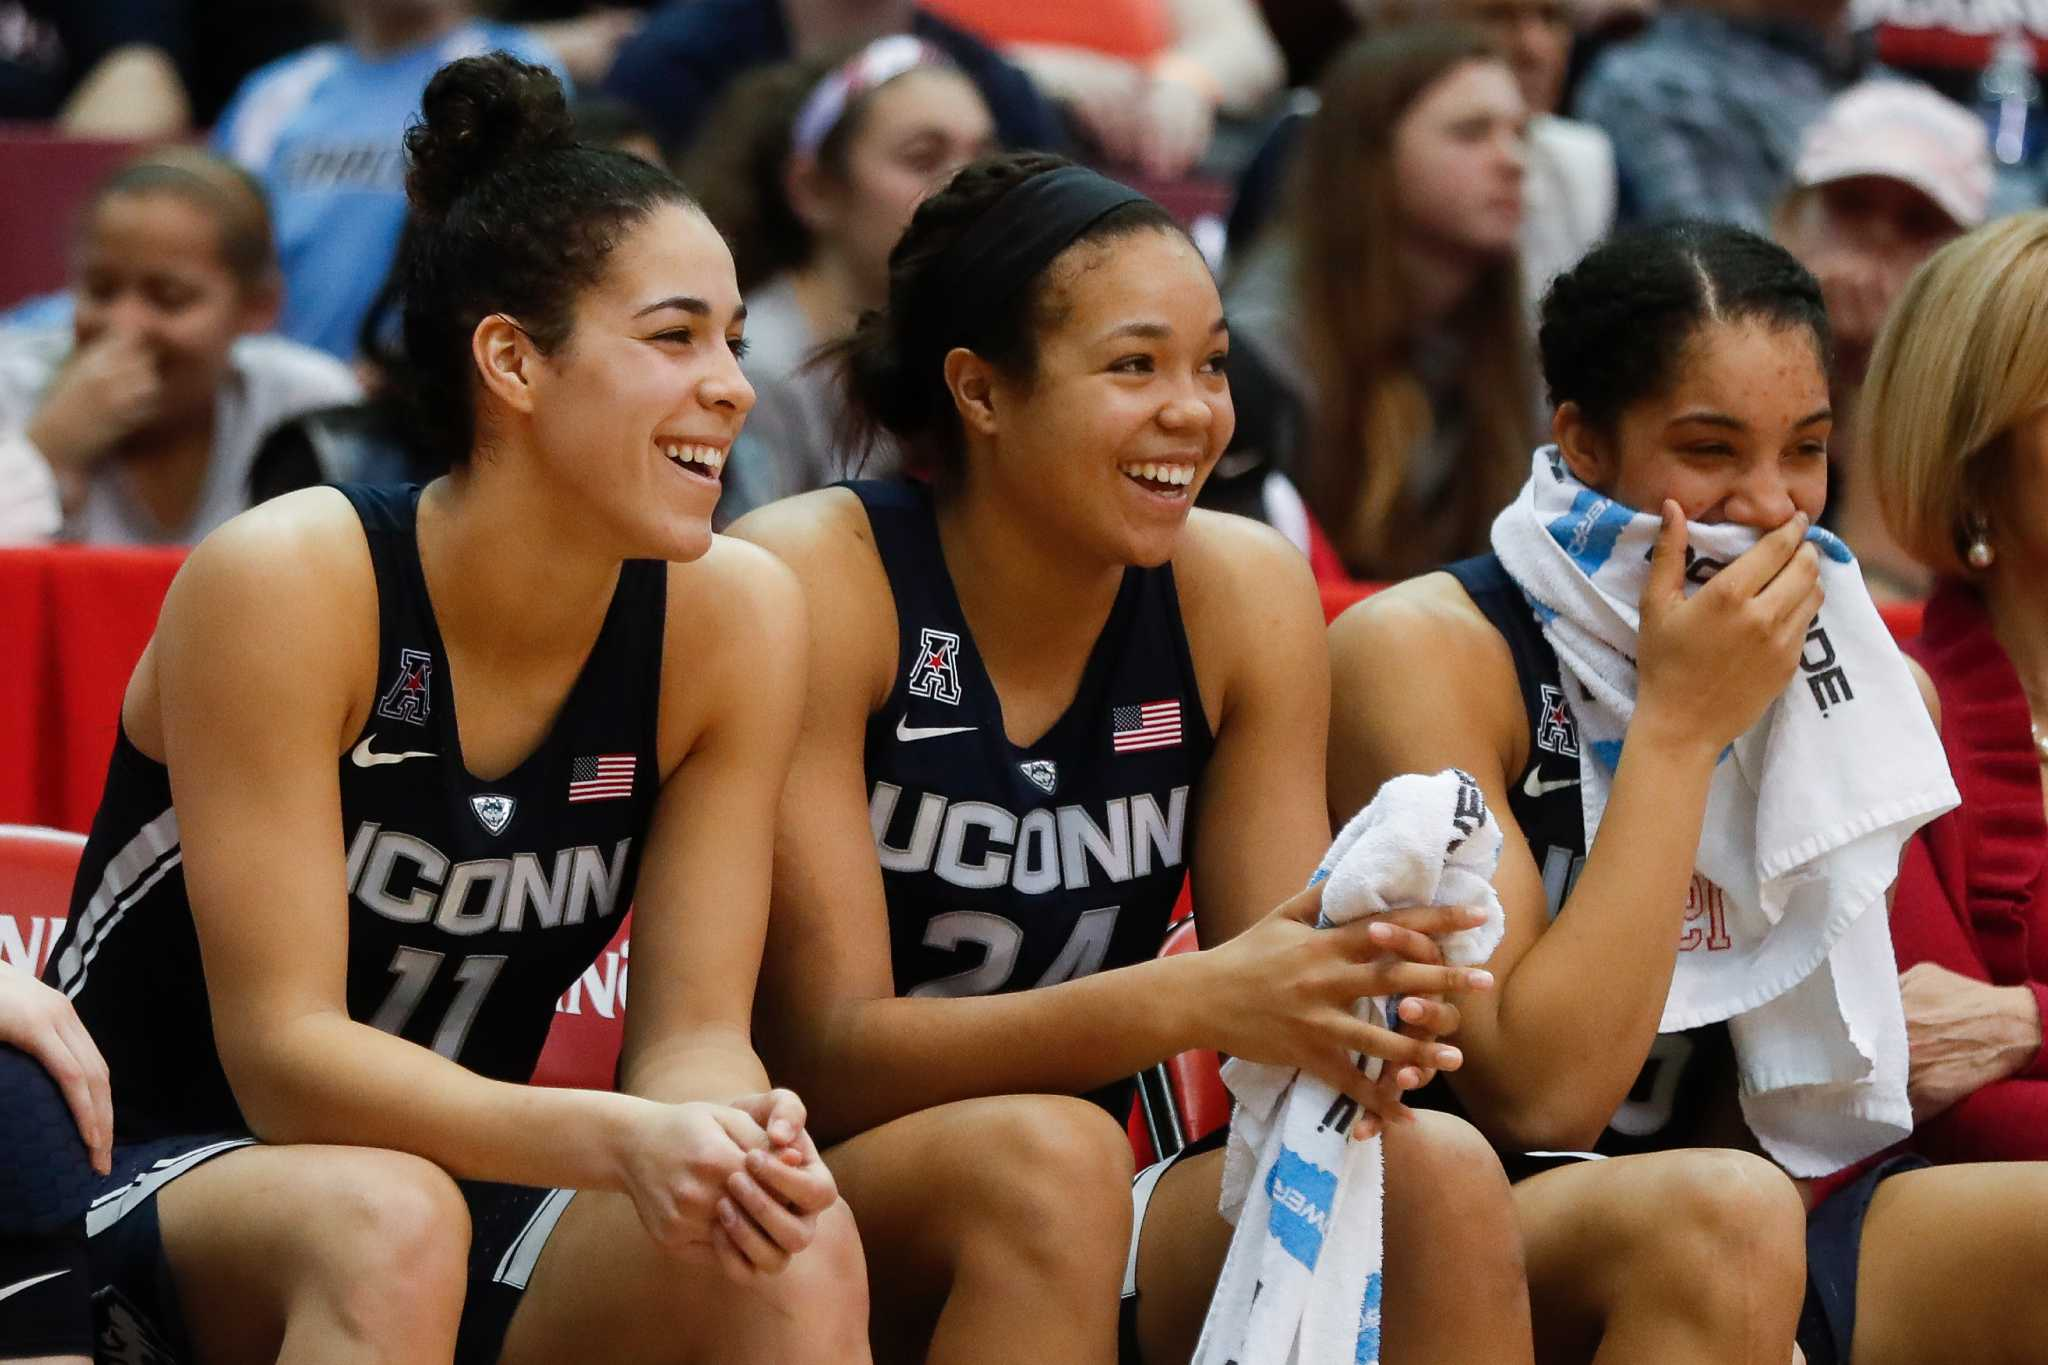 b29af46414a 1 UConn women s shot at 100th straight win a testament to program s makeup